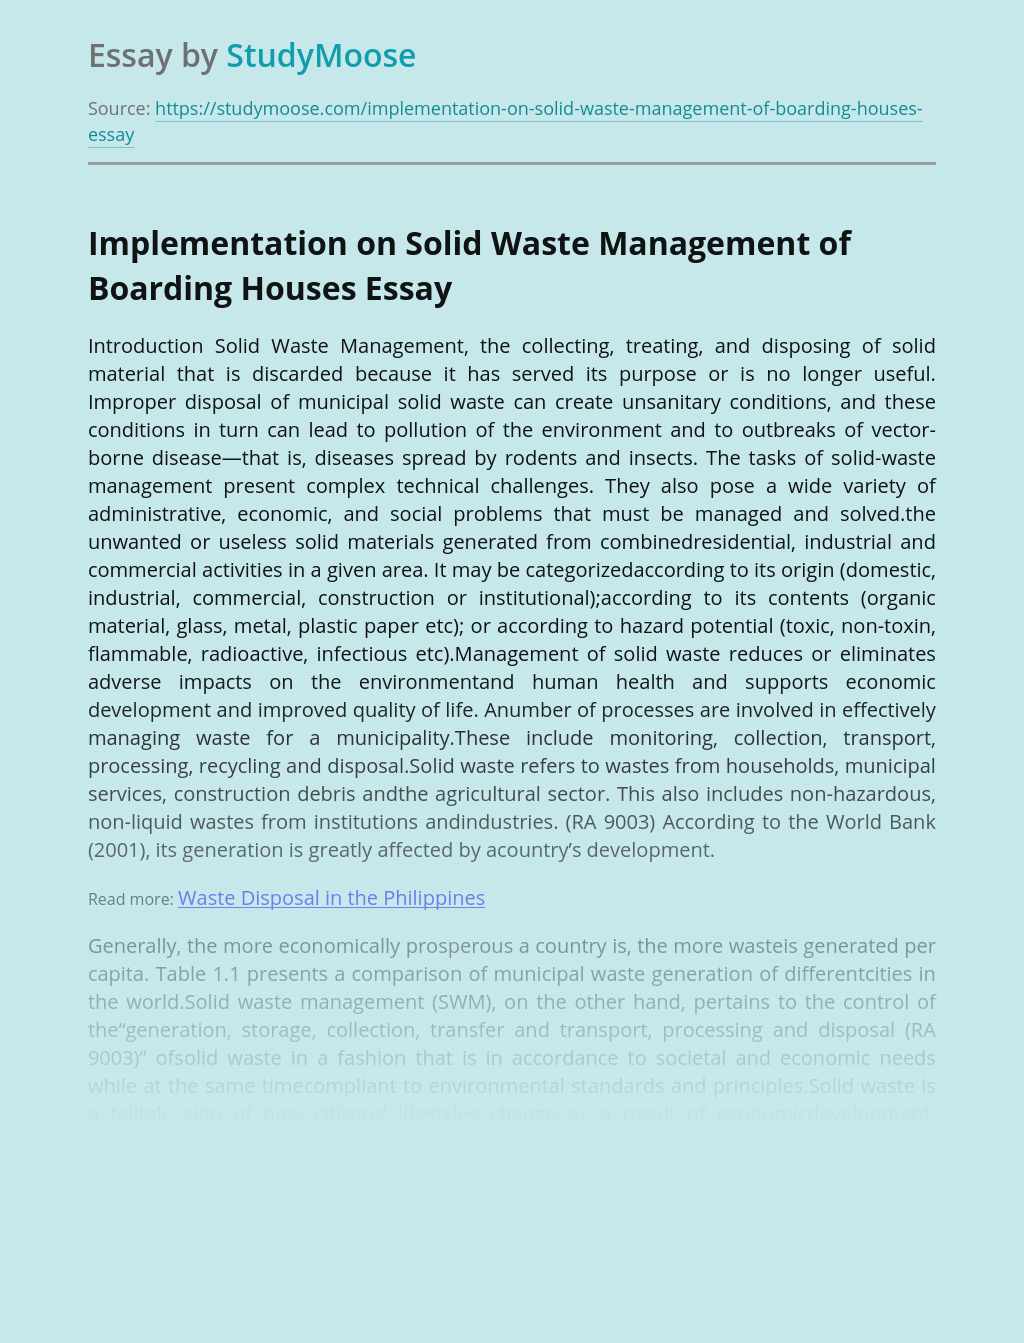 Implementation on Solid Waste Management of Boarding Houses